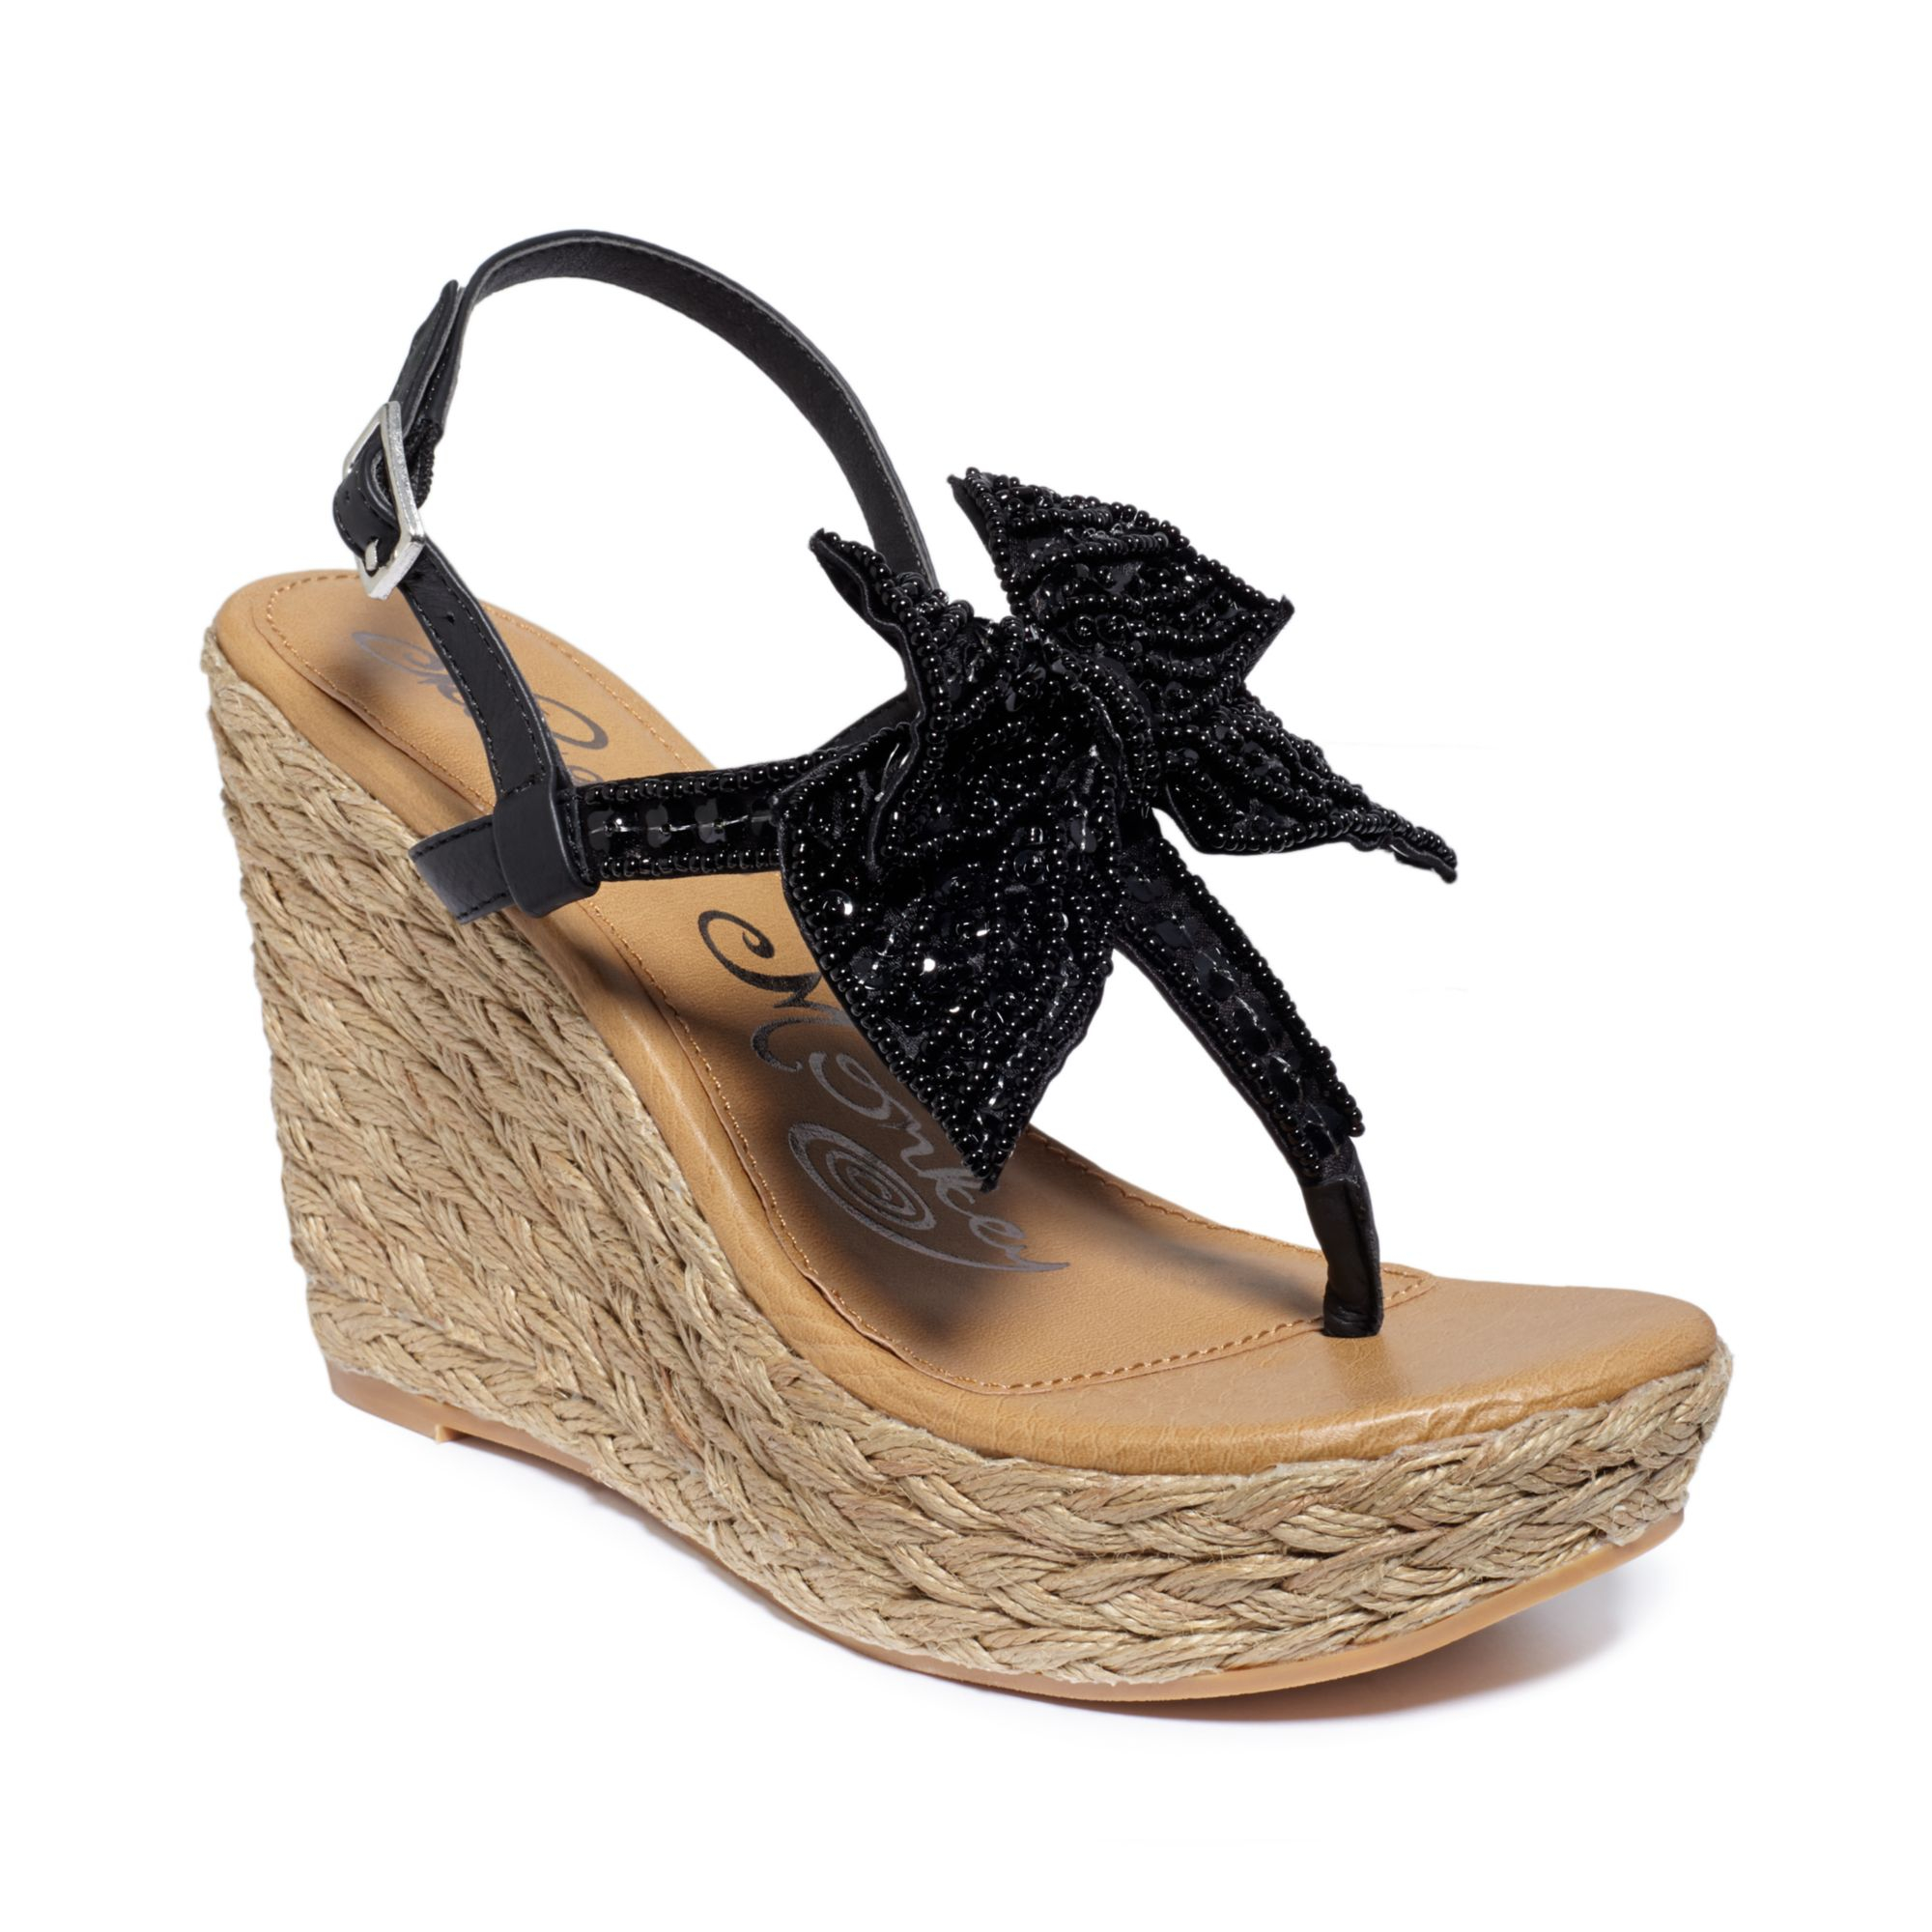 05e427c9e Lyst - Naughty Monkey Feel Free Platform Wedge Thong Sandals in Black